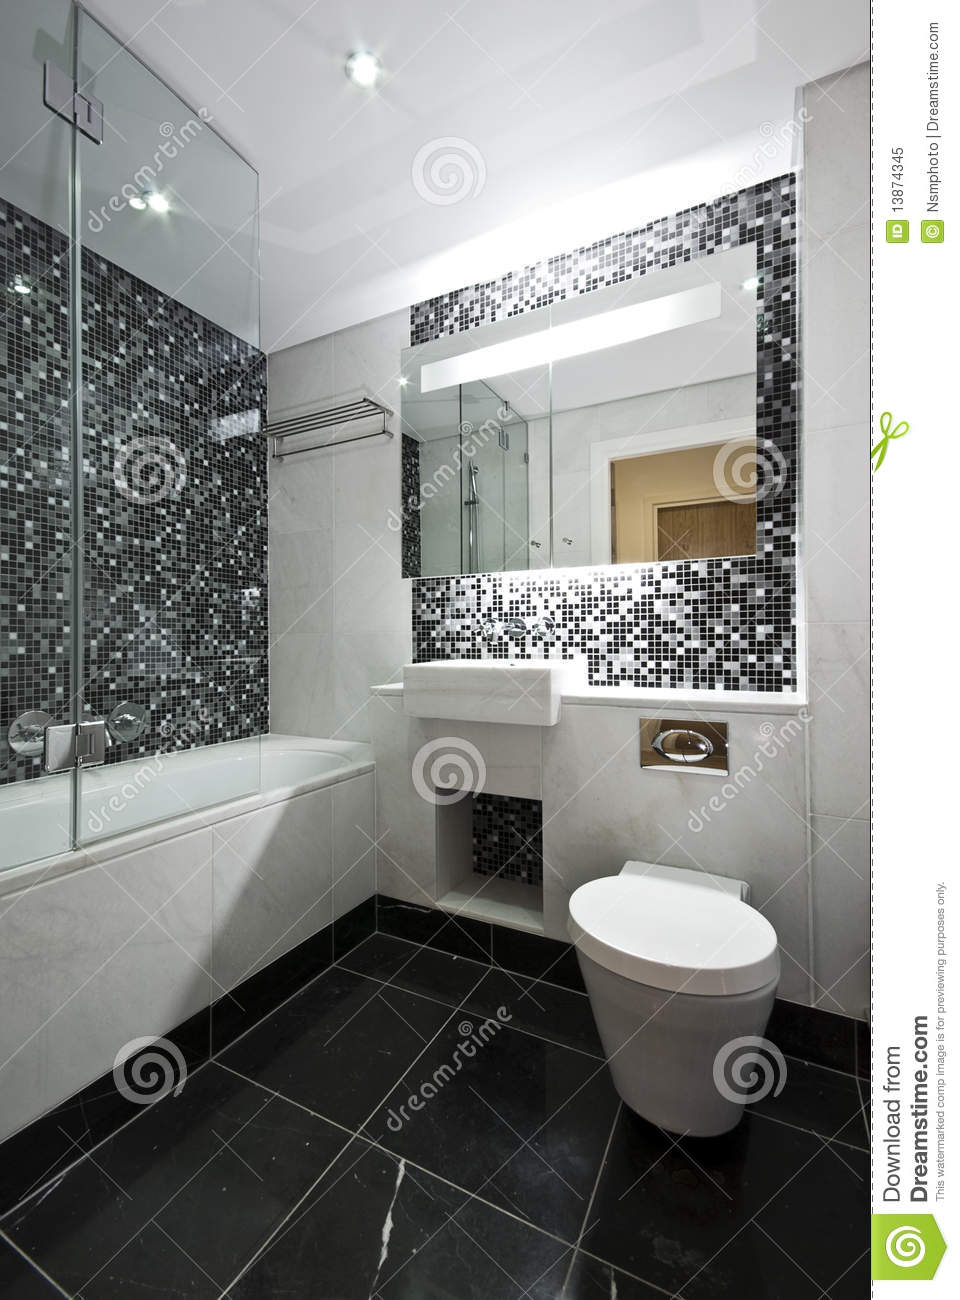 Contemporary en suite bathroom in black and white stock for Carrelage salle de bain imitation marbre